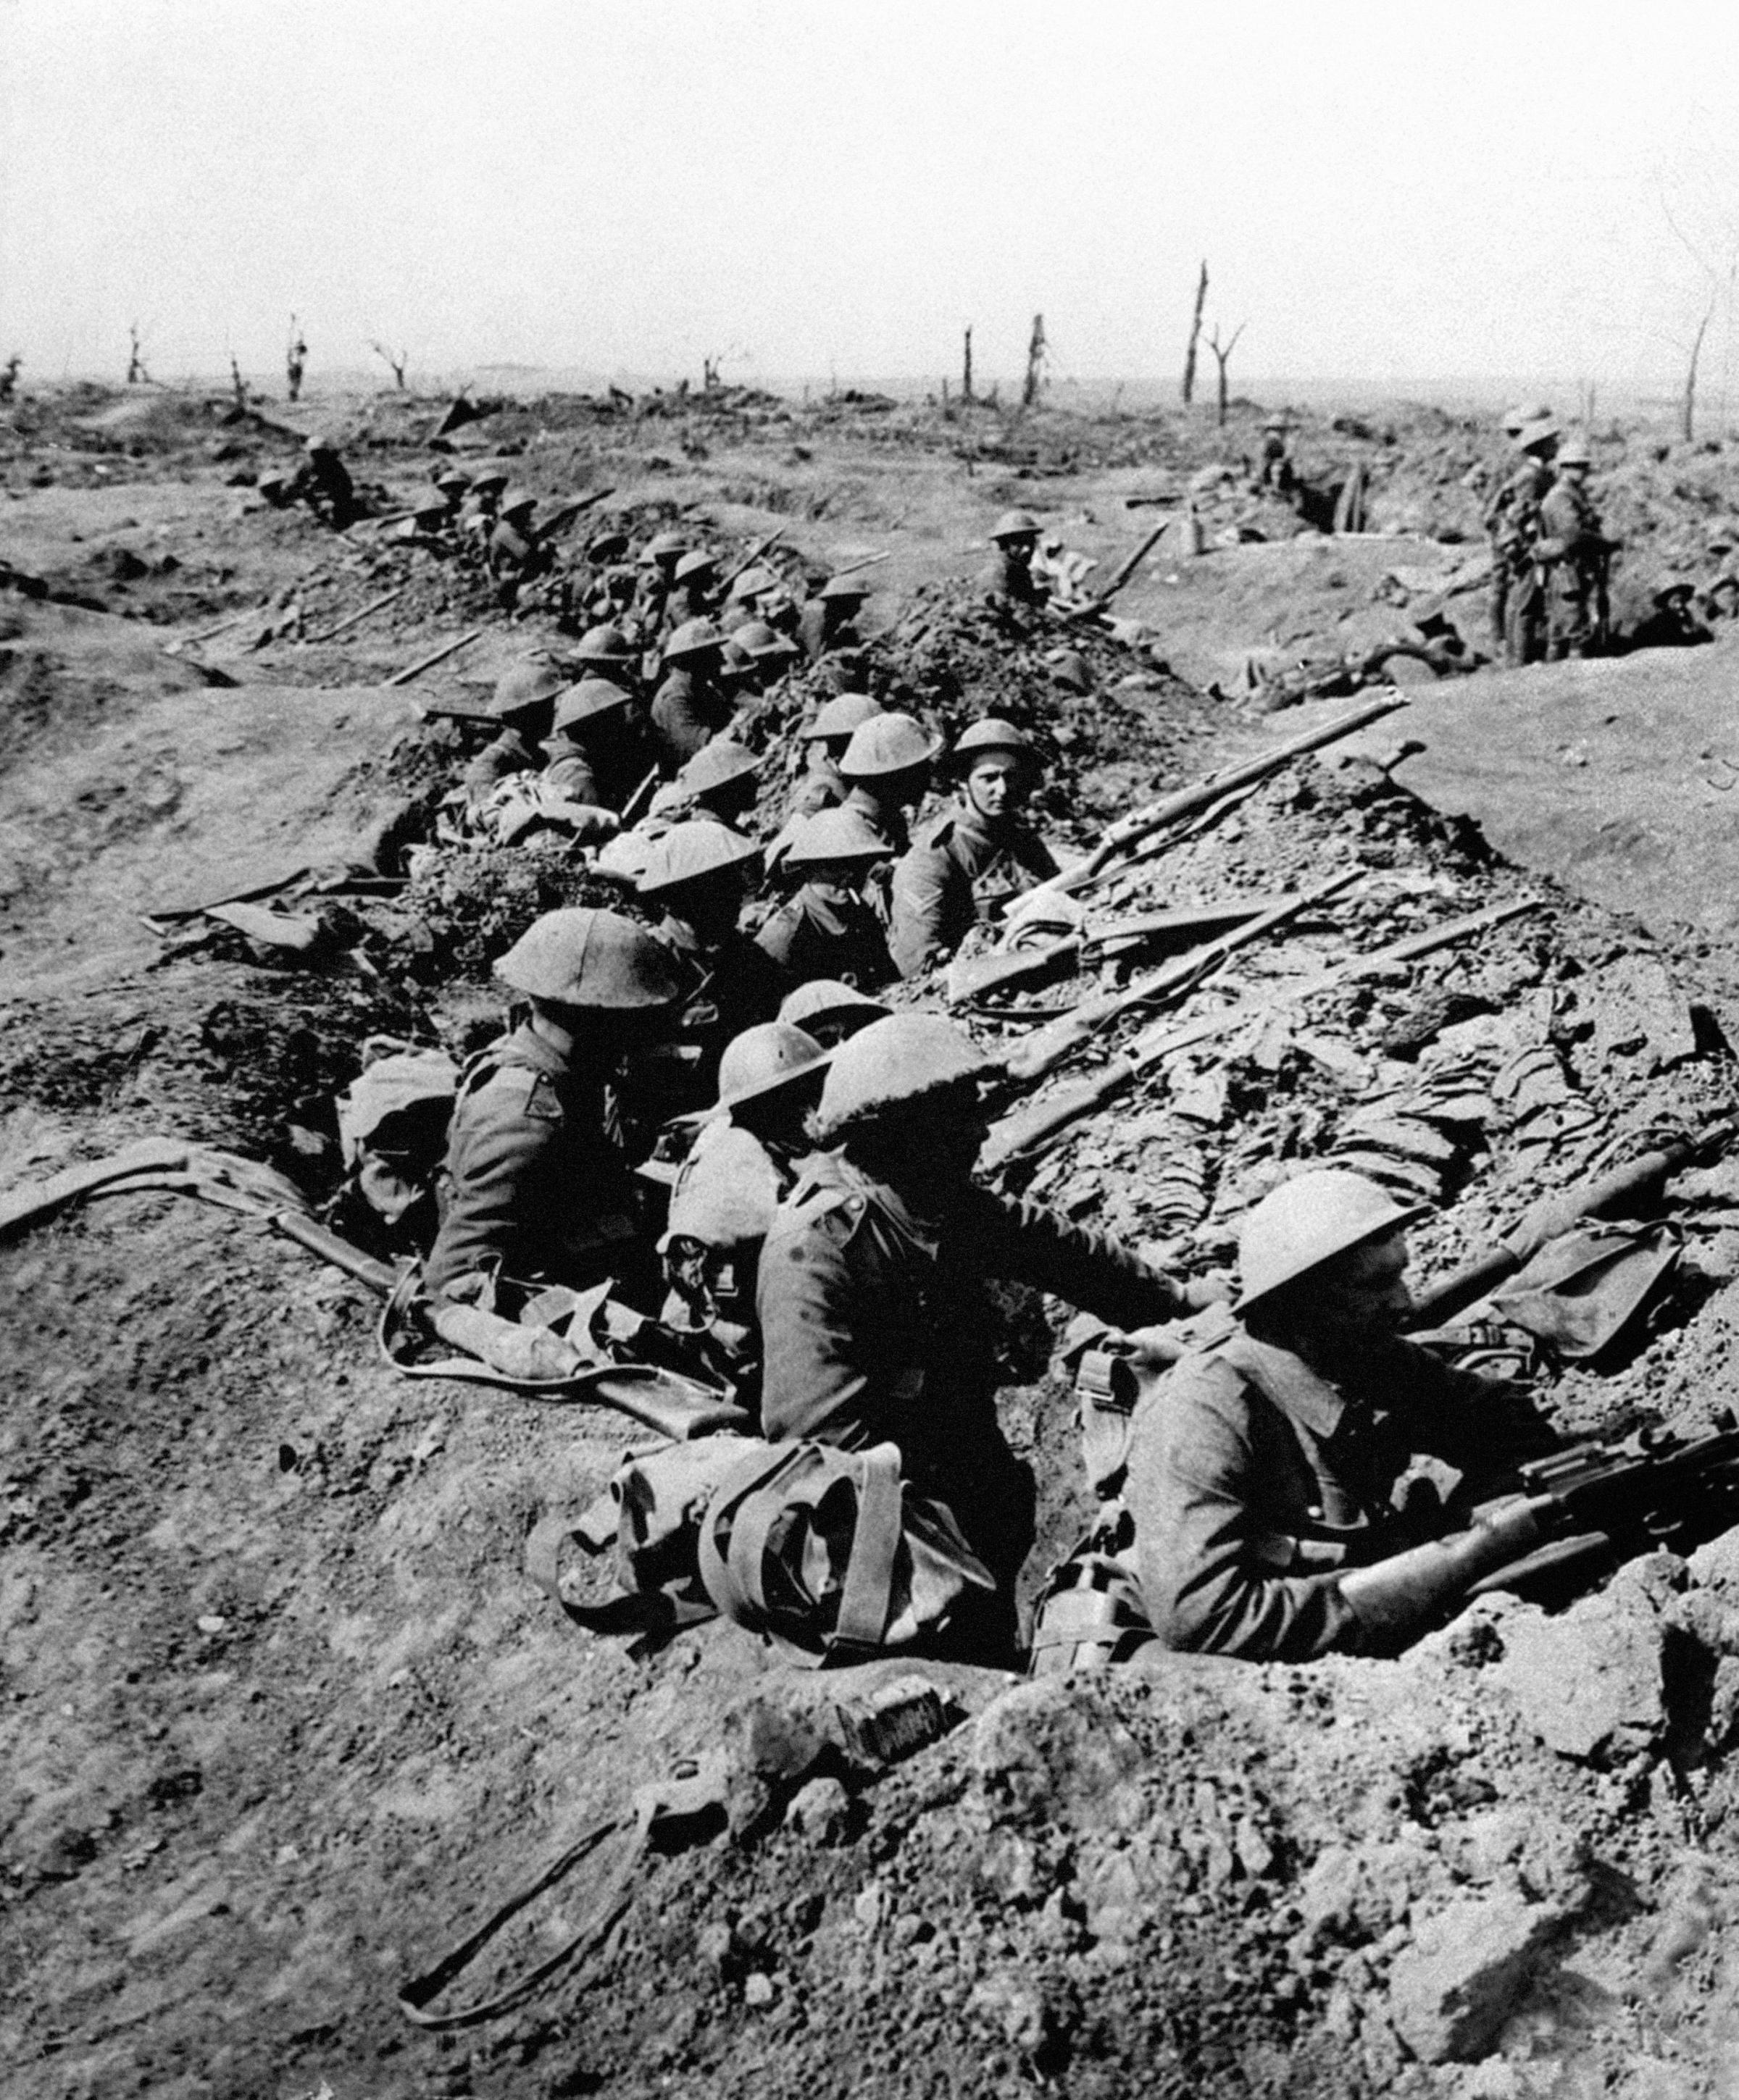 WW1 ARGUS ARCHIVE: Progress on the Somme